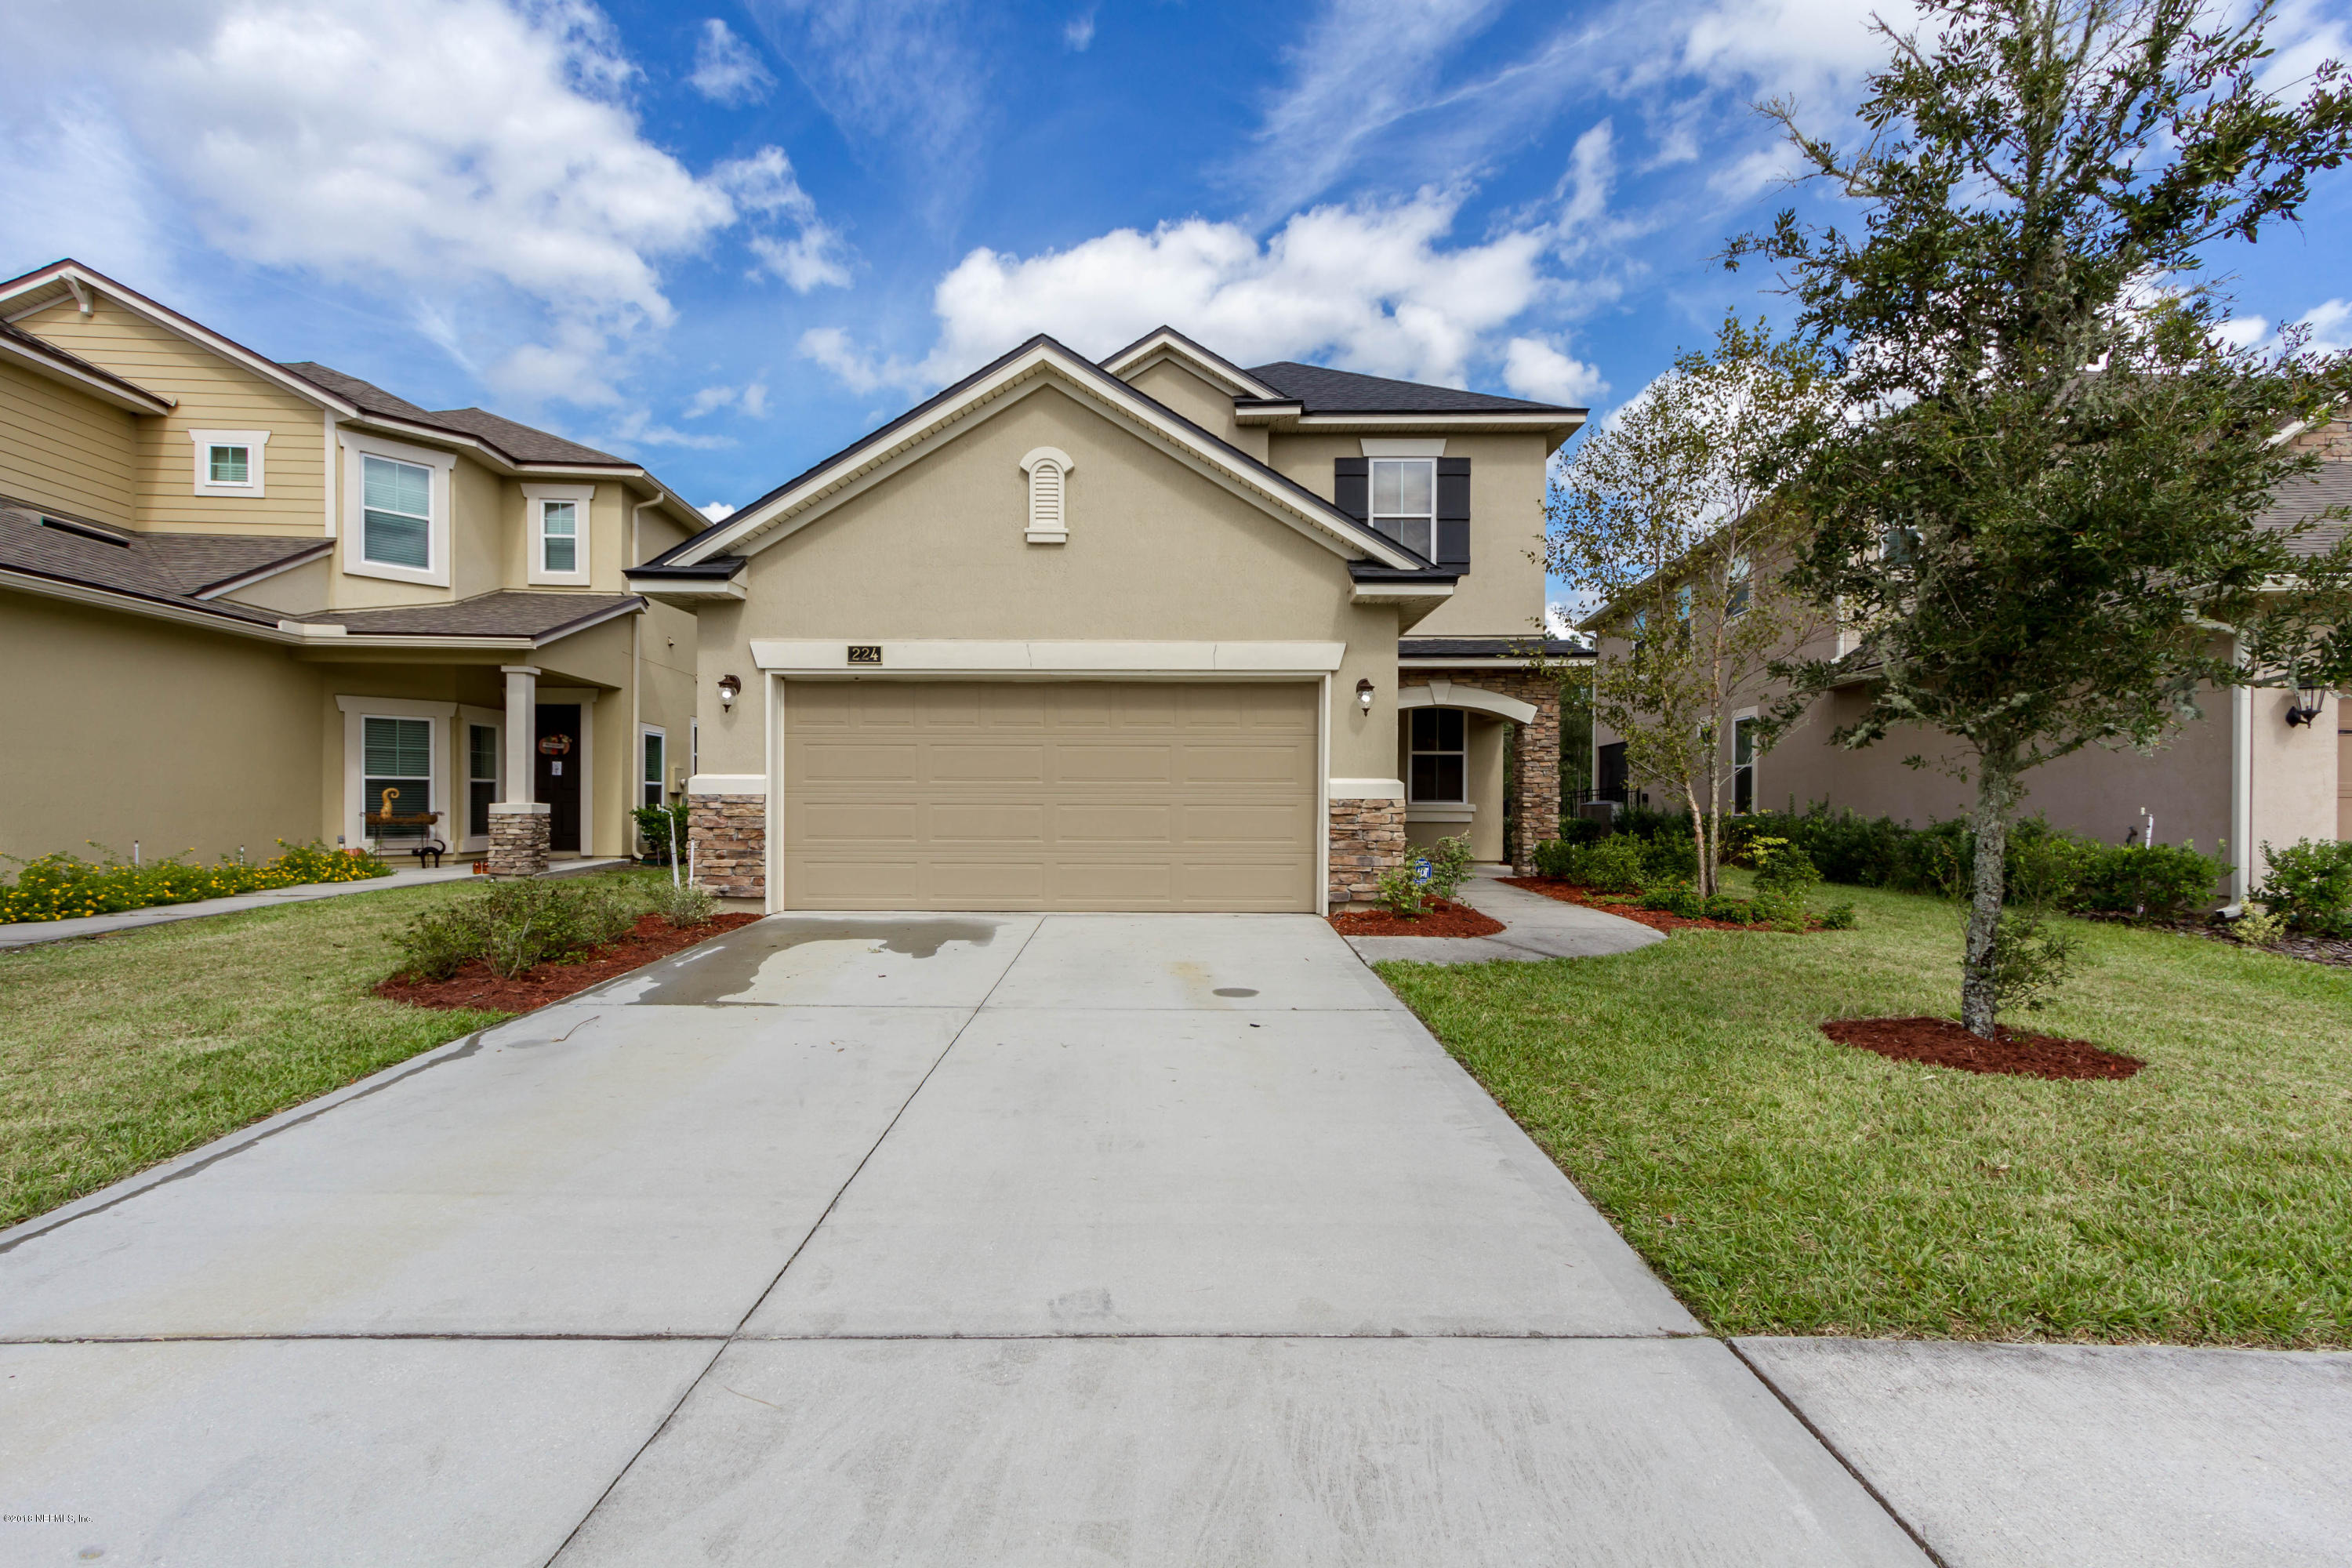 224 HERON LANDING, ST JOHNS, FLORIDA 32259, 4 Bedrooms Bedrooms, ,4 BathroomsBathrooms,Residential - single family,For sale,HERON LANDING,963580